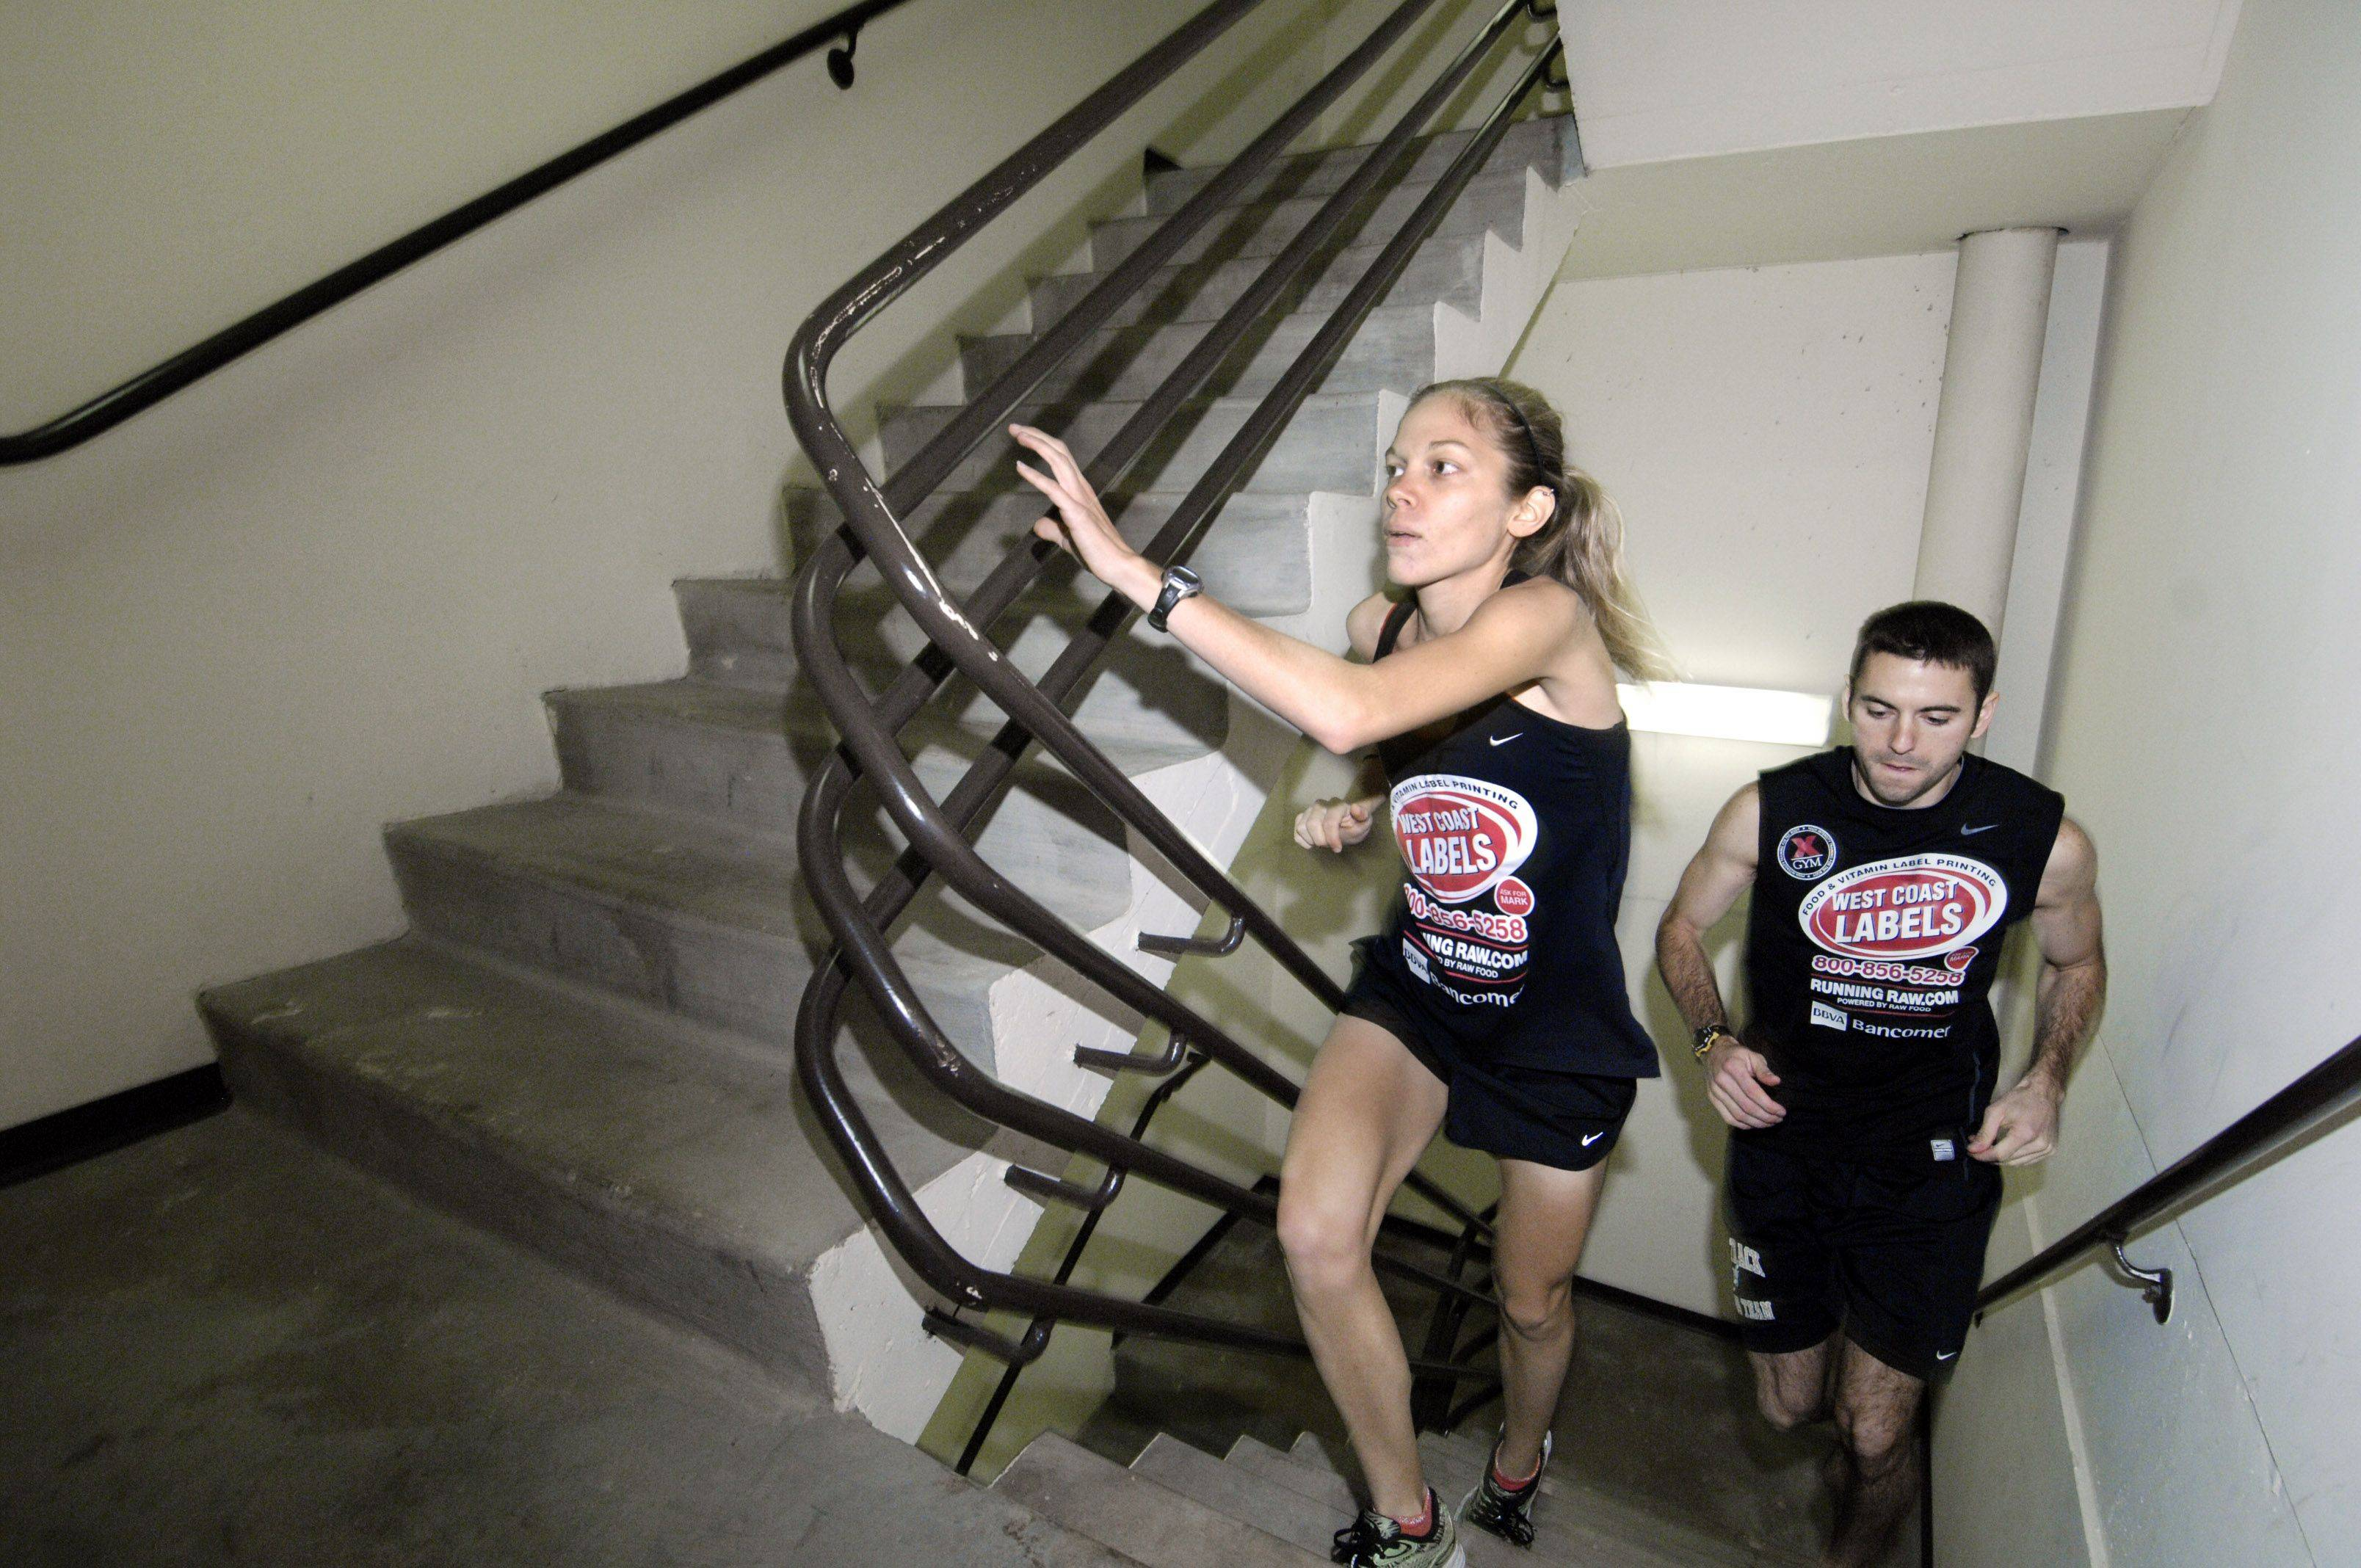 Schaumburg residents and elite stair climbers Kristin Frey, ranked 5th in world, and Braden Renshaw, ranked 29th in the world, train in the stairwell of a Schaumburg building in preparation for the stair climbing competition at Willis Tower Sunday. Renshaw climbs barefoot.